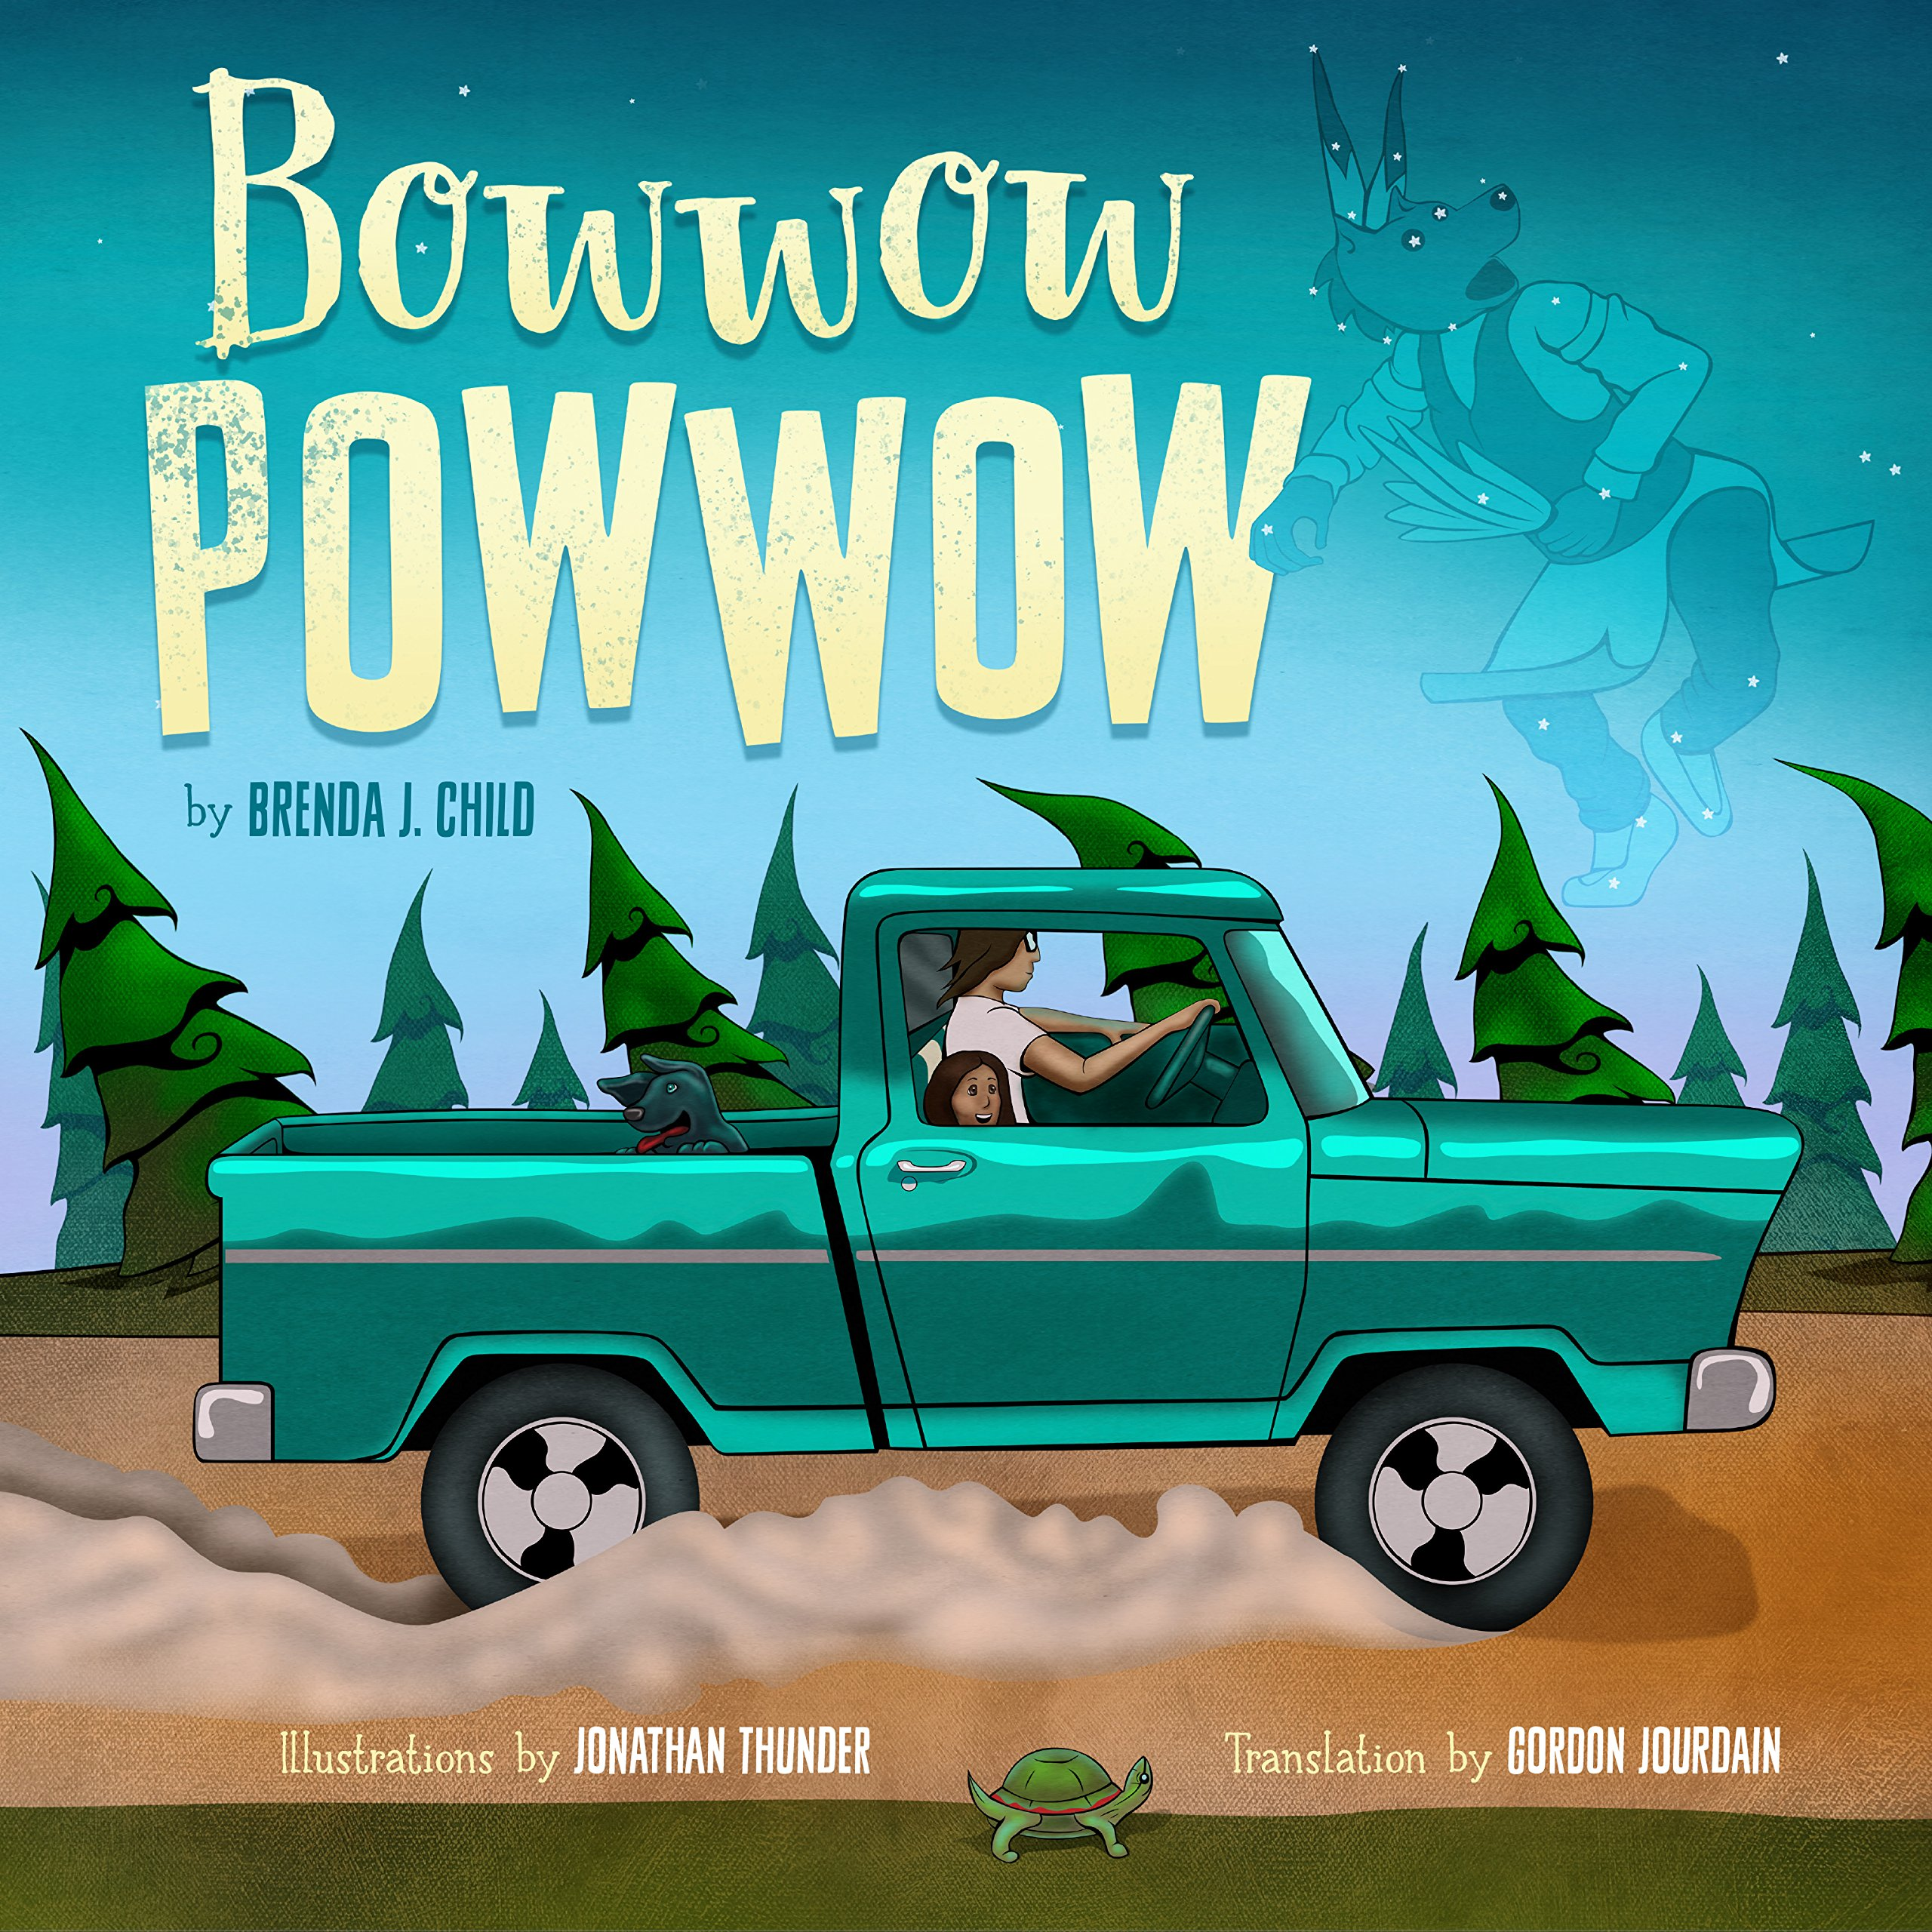 Image result for bowwow powwow amazon